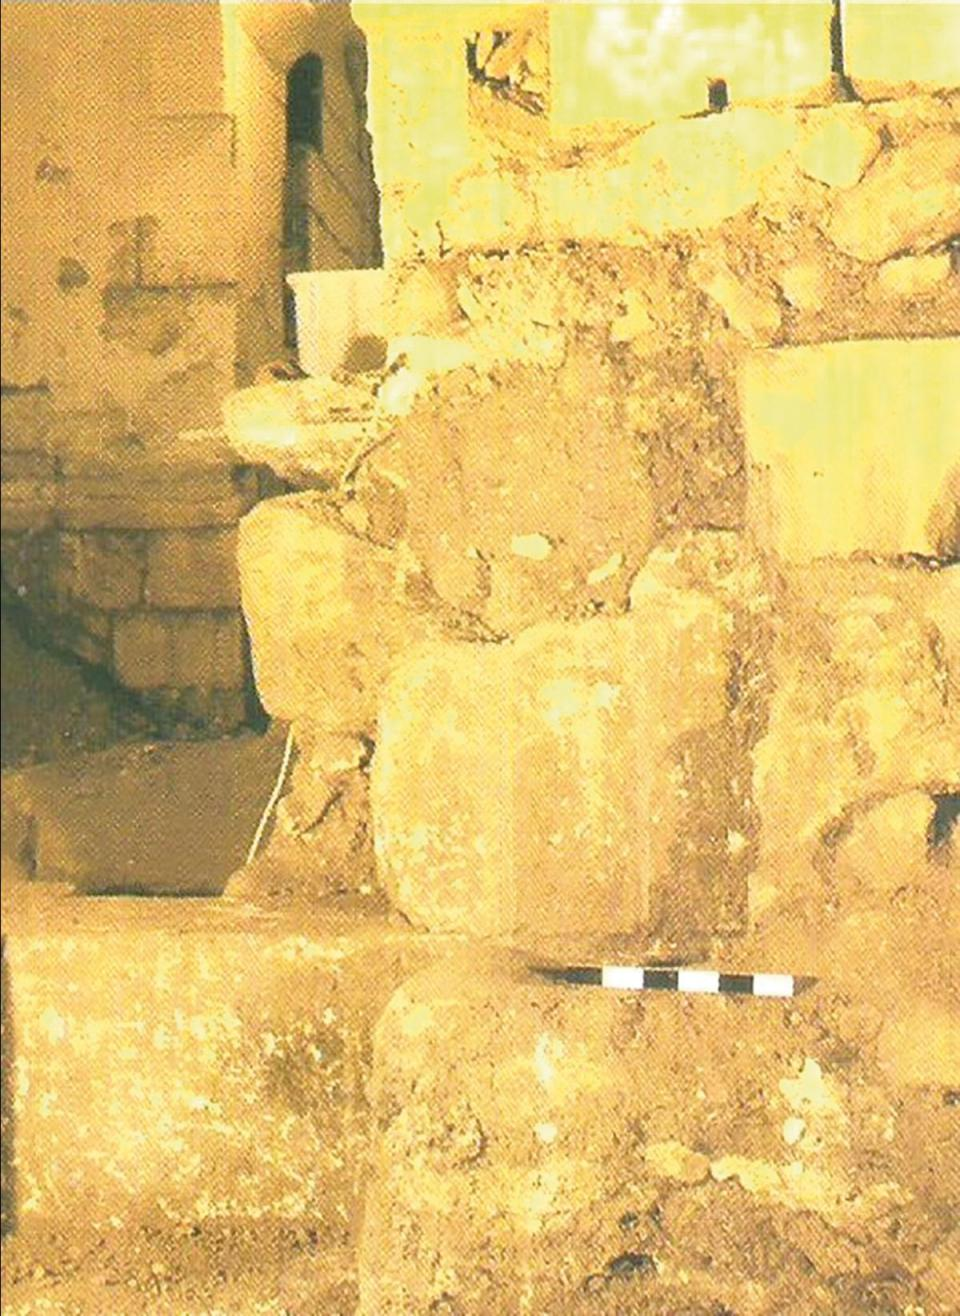 Ashlar blocks from the massive early foundations of Mdina which the Arabs developed from the Byzantine city.